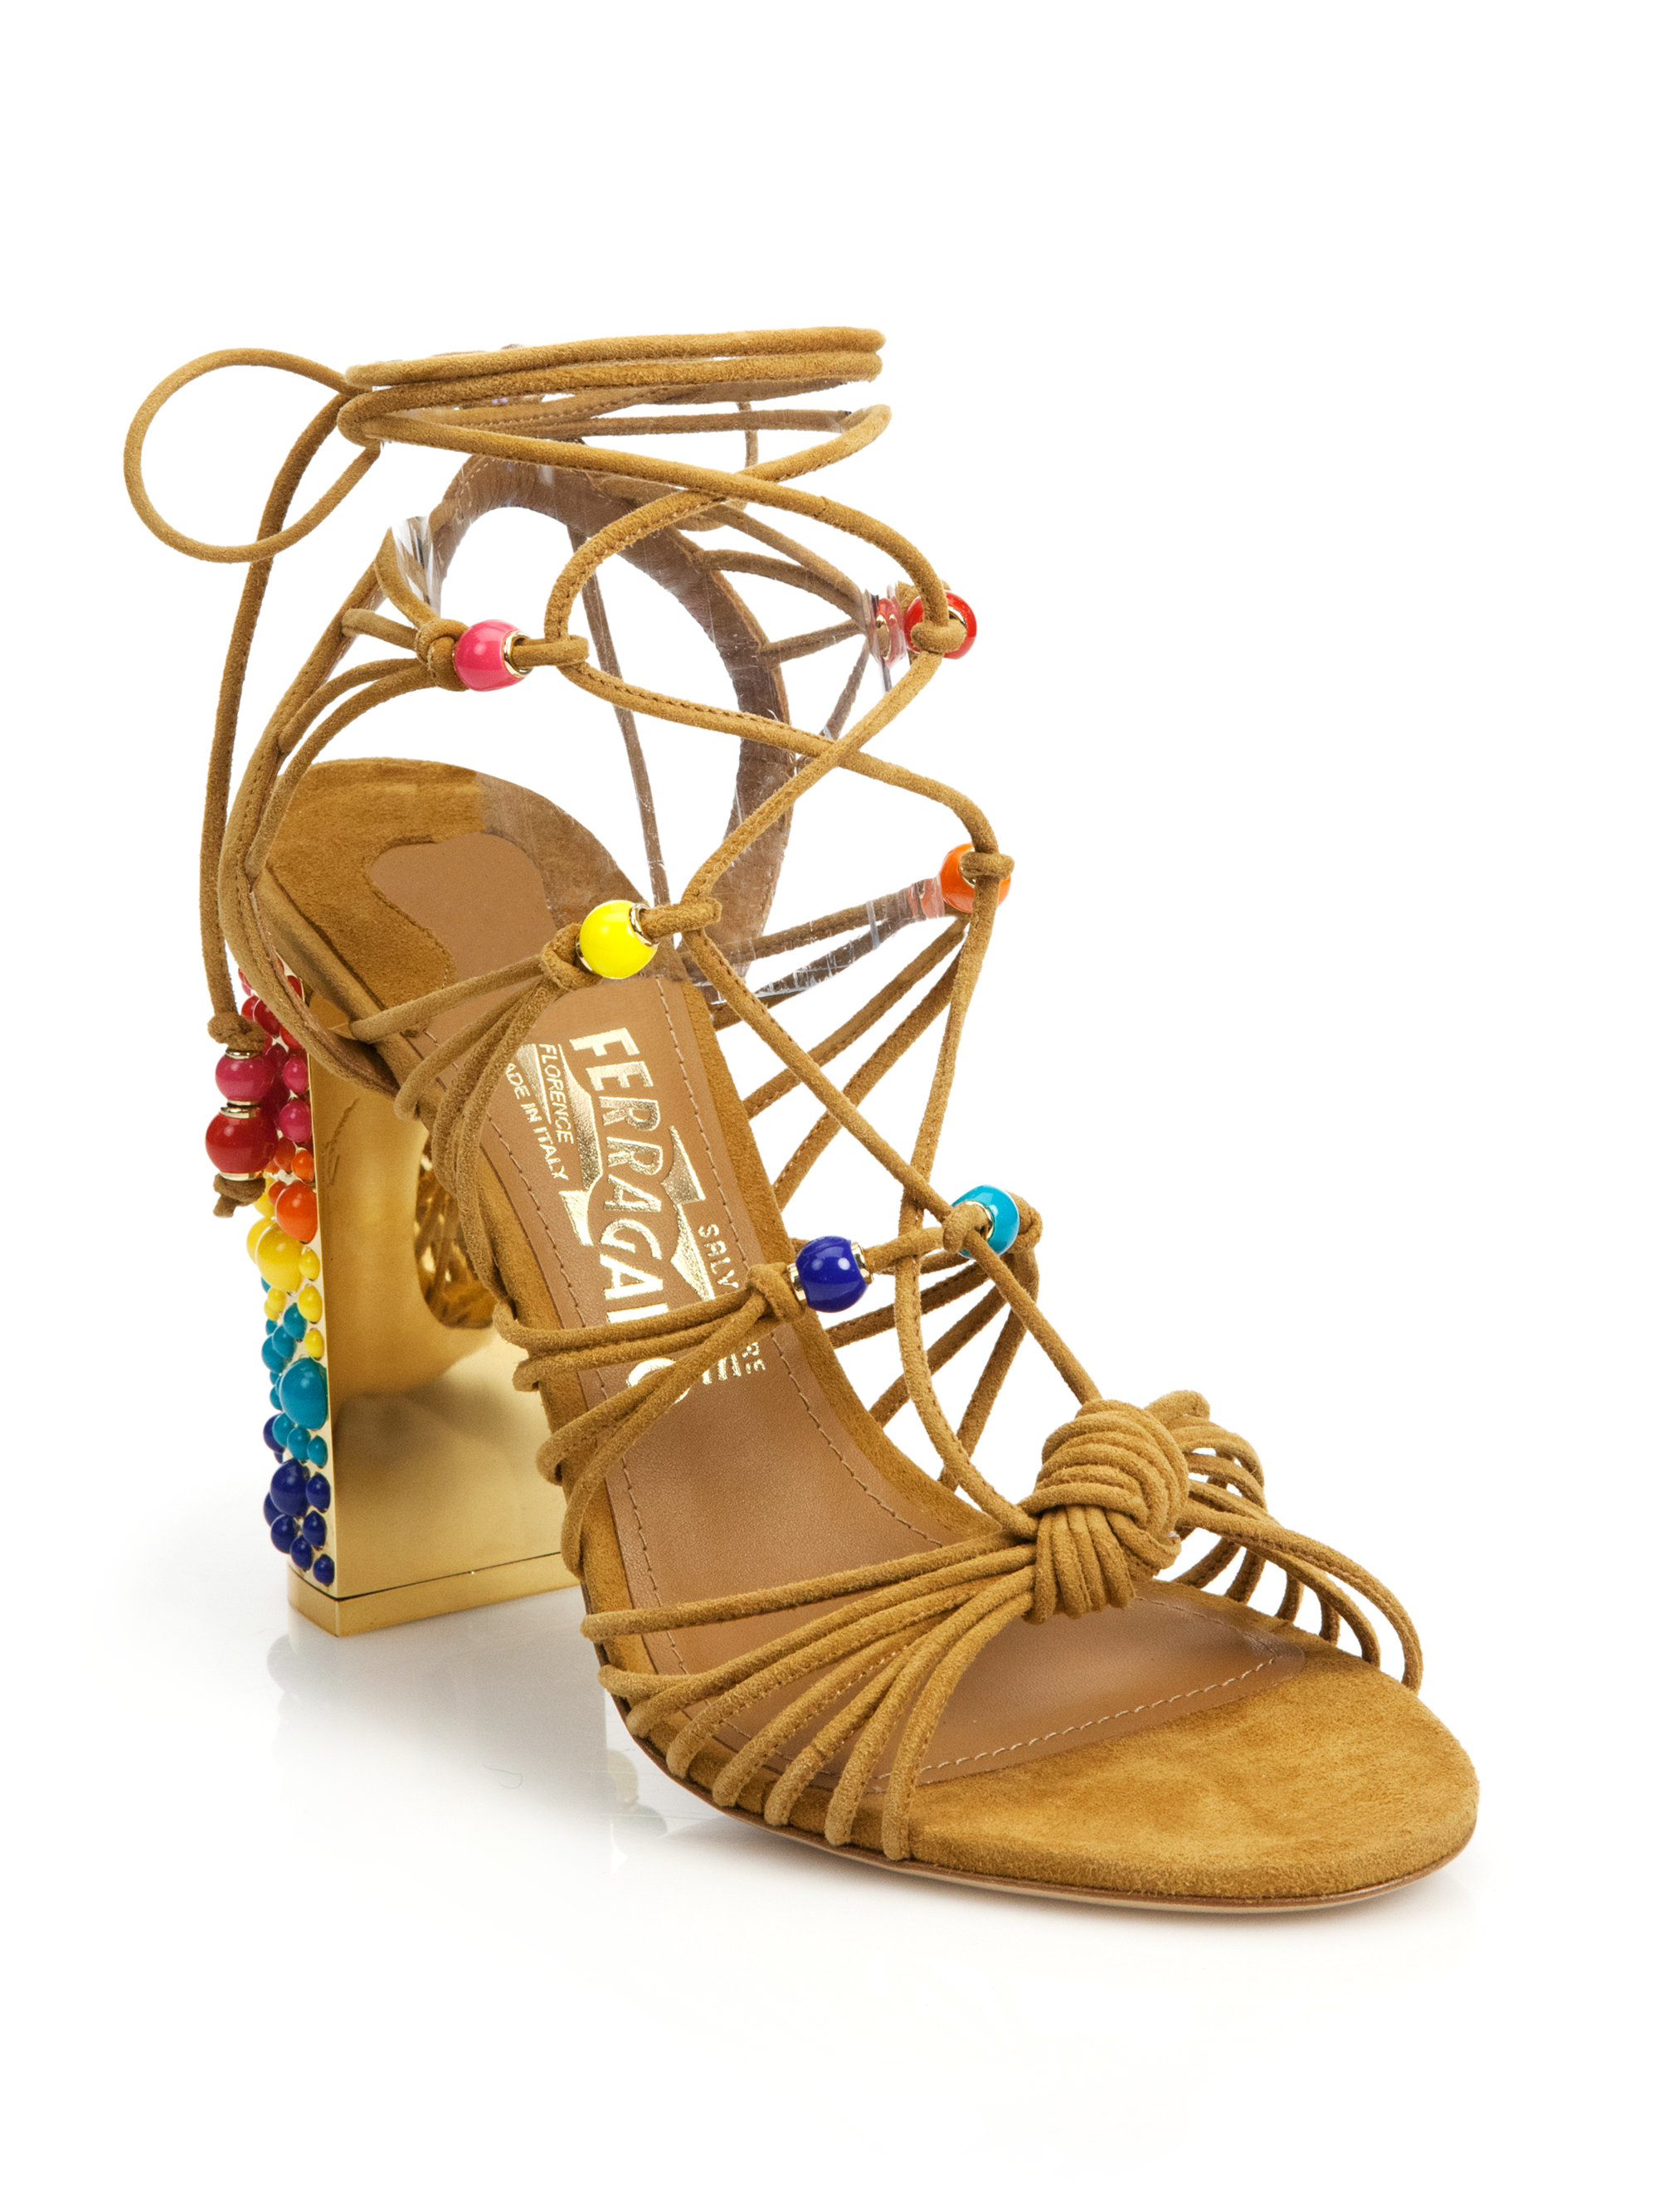 clearance supply Salvatore Ferragamo Lace-Up Cage Sandals clearance big sale cheap marketable discount 2014 new gY0fNhUFb